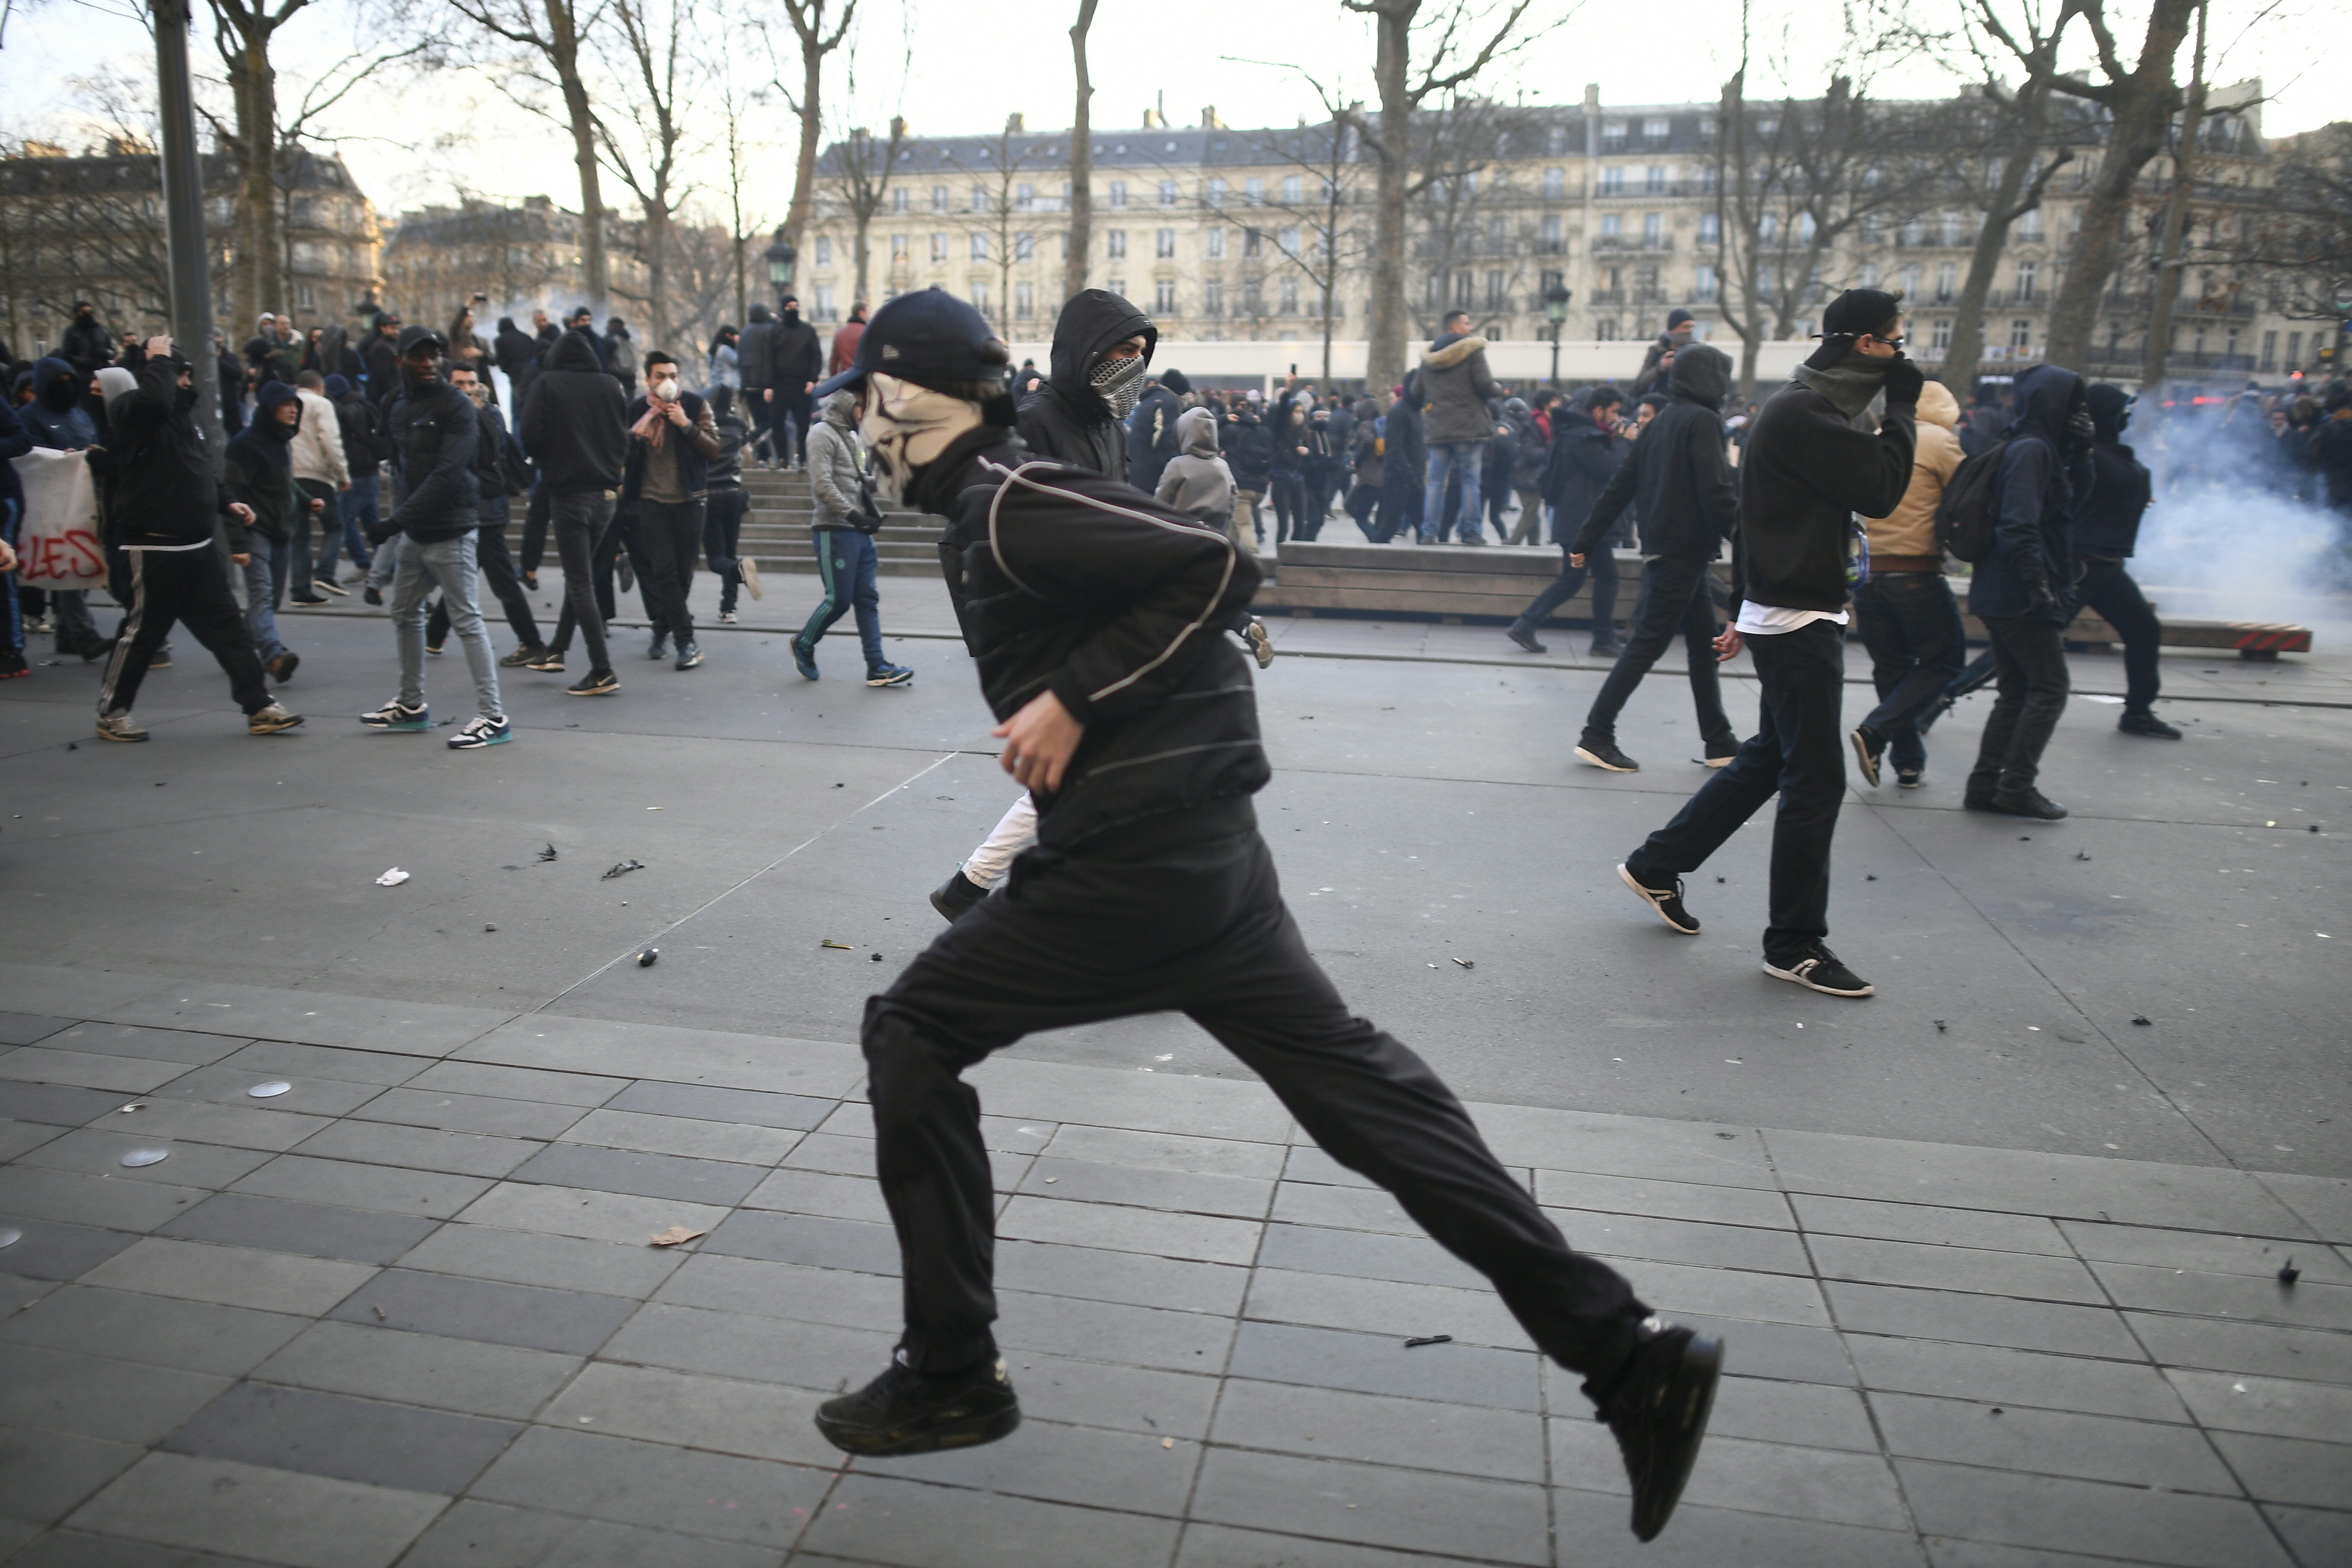 A person runs during a demonstration against police brutality on February 18, 2017 on the place de la Republique in Paris, following the alleged rape of a black youth, identified only as Theo, with a police baton, an incident that has sparked 10 nights of rioting and more than 200 arrests. The injuries sustained by Theo during a stop-and-search operation on February 2 in the suburb of Aulnay-sous-Bois, has revived long-simmering frustrations over policing in immigrant communities, where young men accuse the police of repeatedly targeting them in aggressive stop-and-search operations and using excessive force during arrests.  / AFP PHOTO / Lionel BONAVENTURE